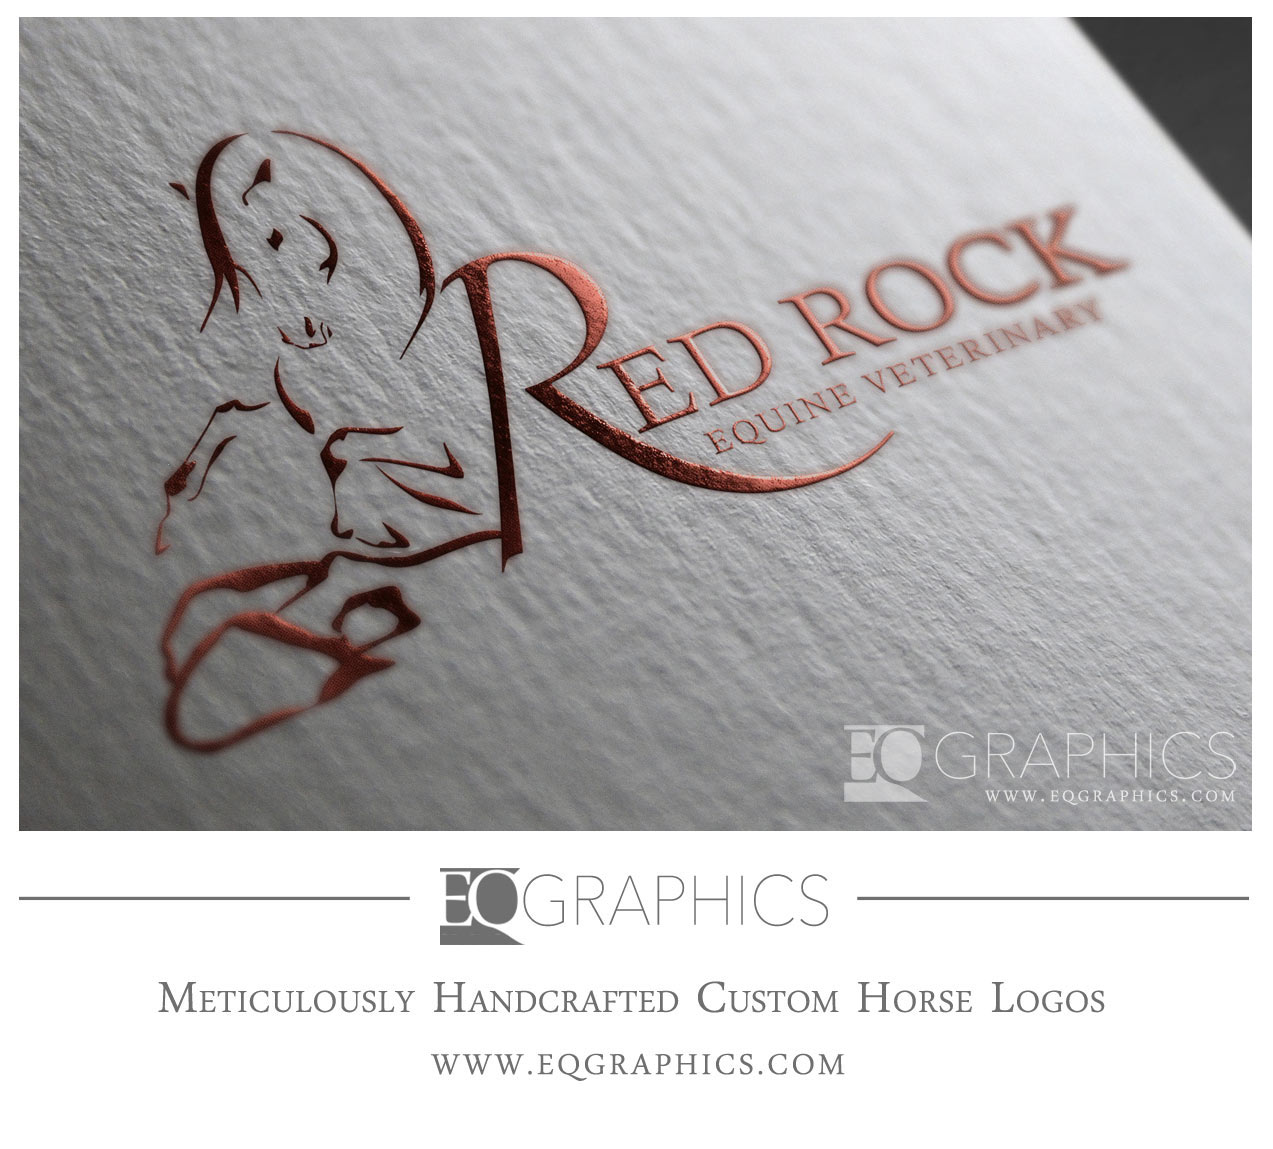 Red Rock Equine Veterinary Logo Design Washington Veterinarian by EQ Graphics